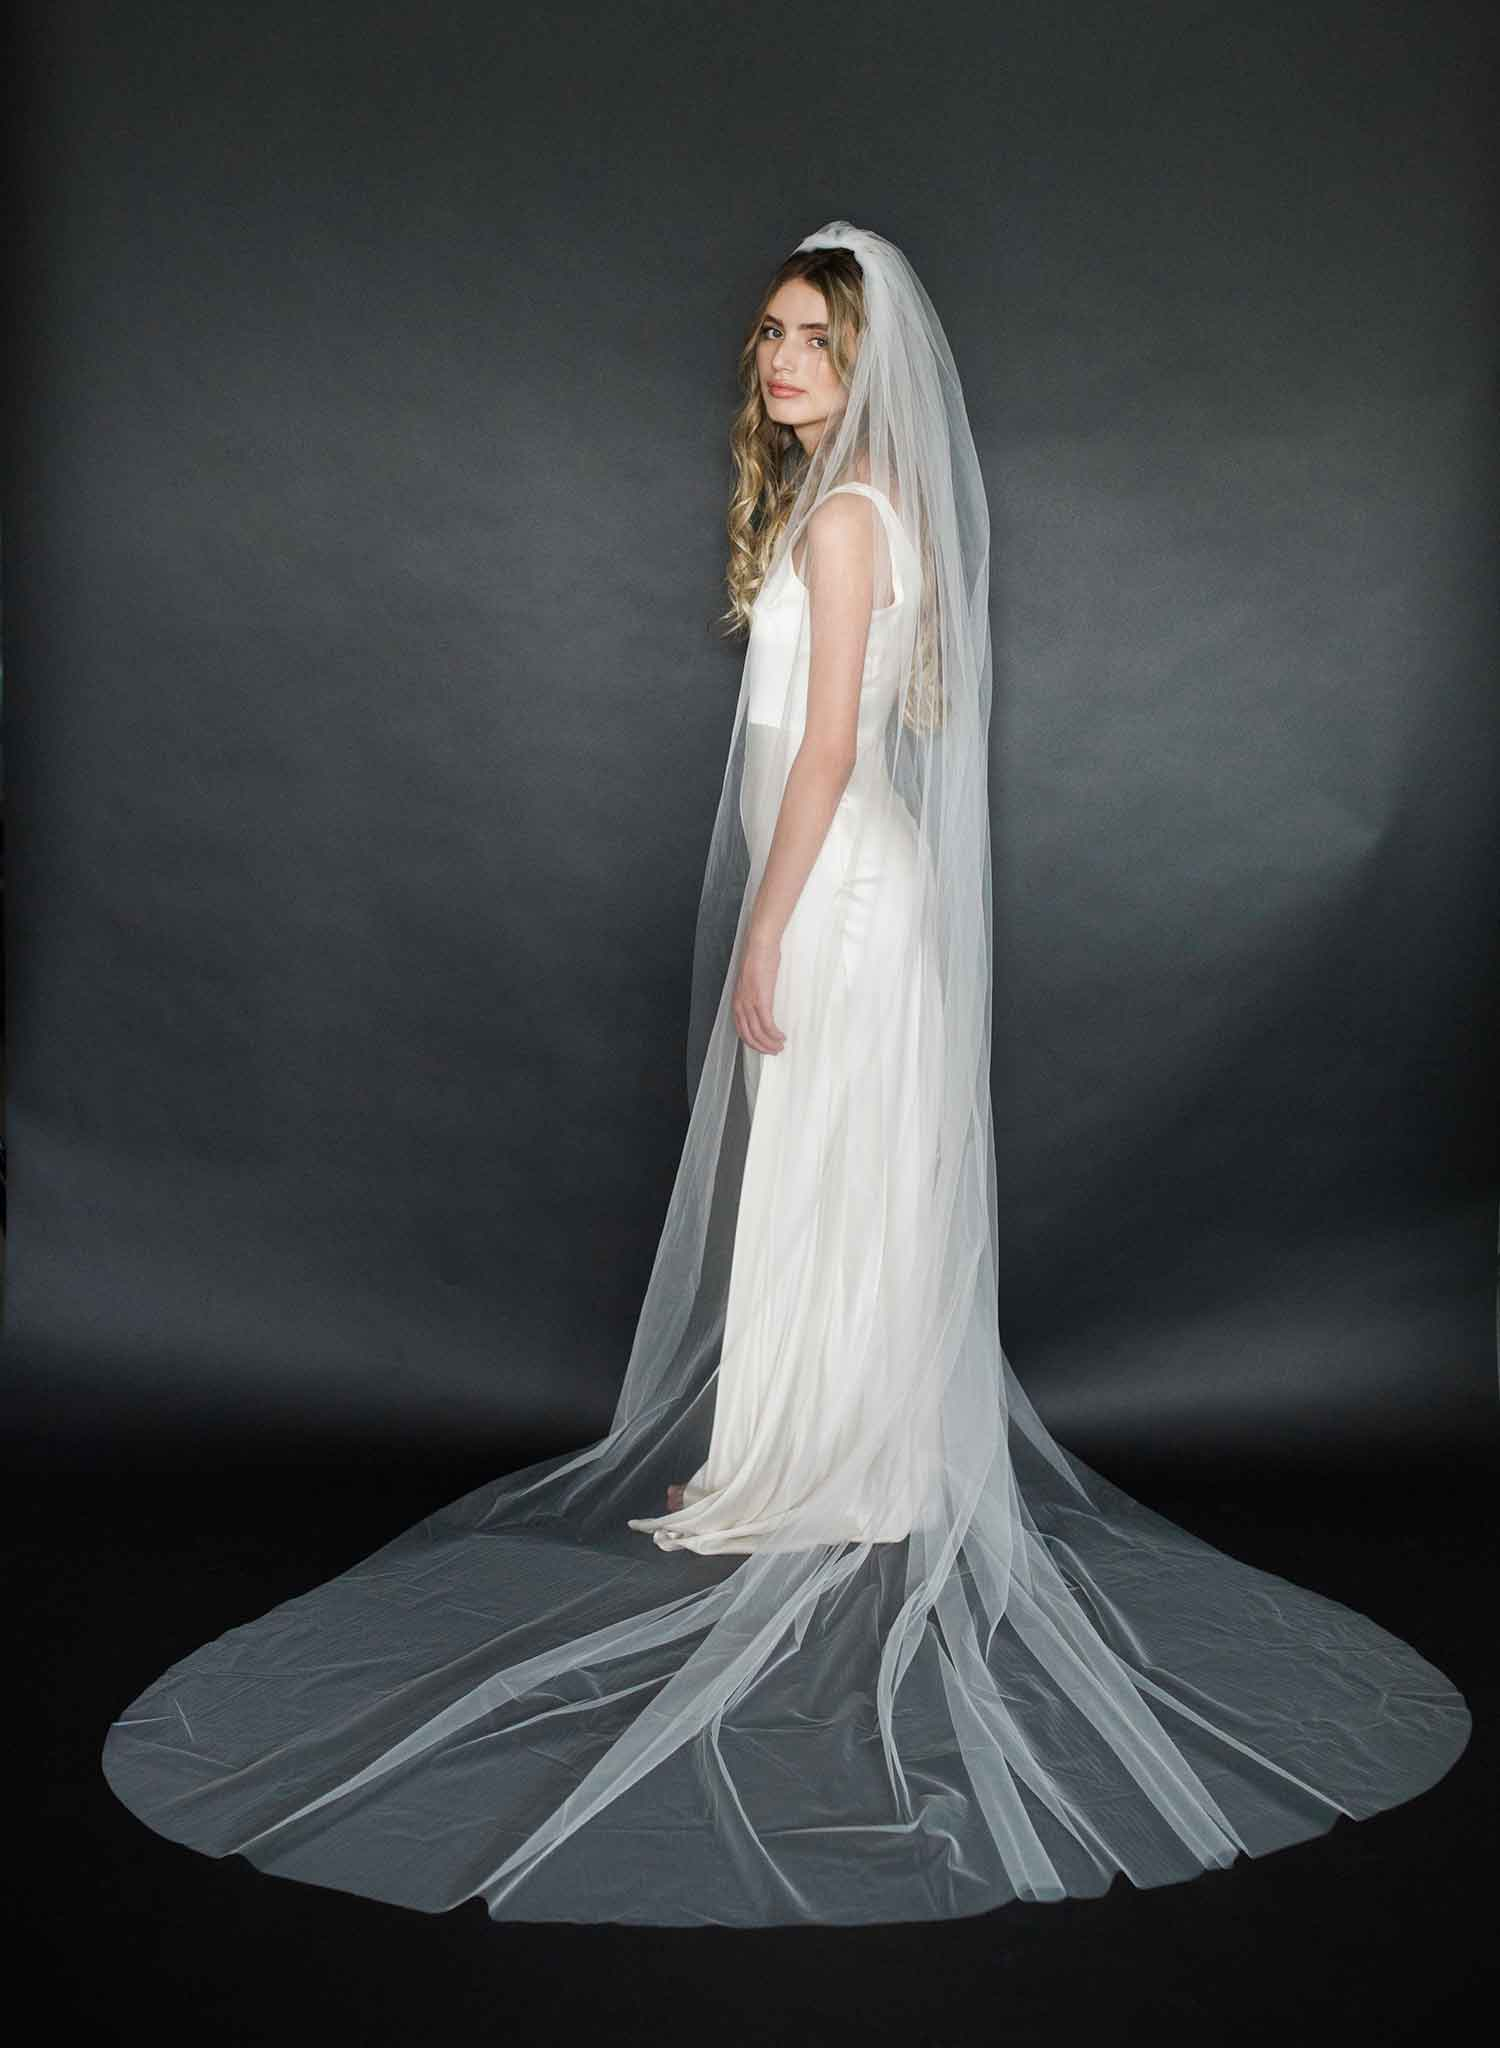 Whisper tulle fantasy train veil - Style #2009